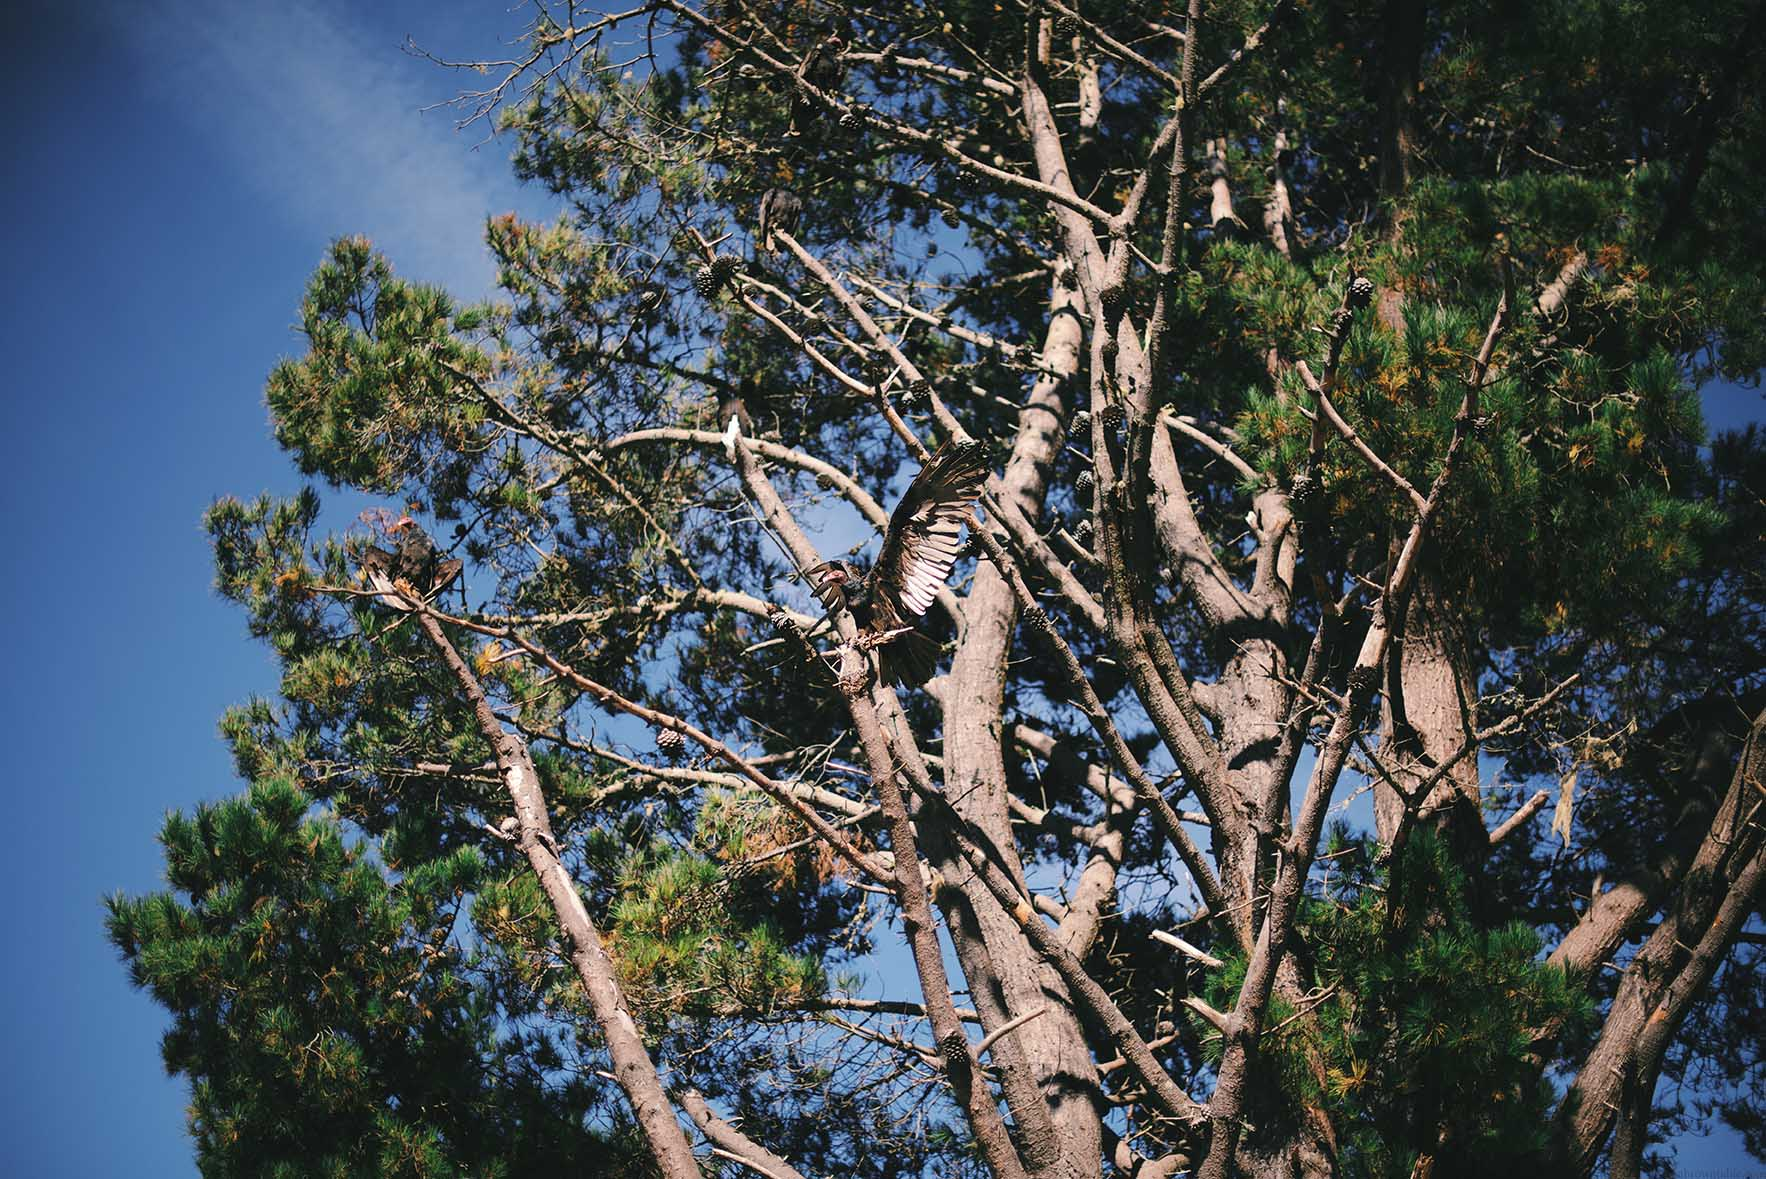 Concords (birds), Mendocino, California | A Brown Table